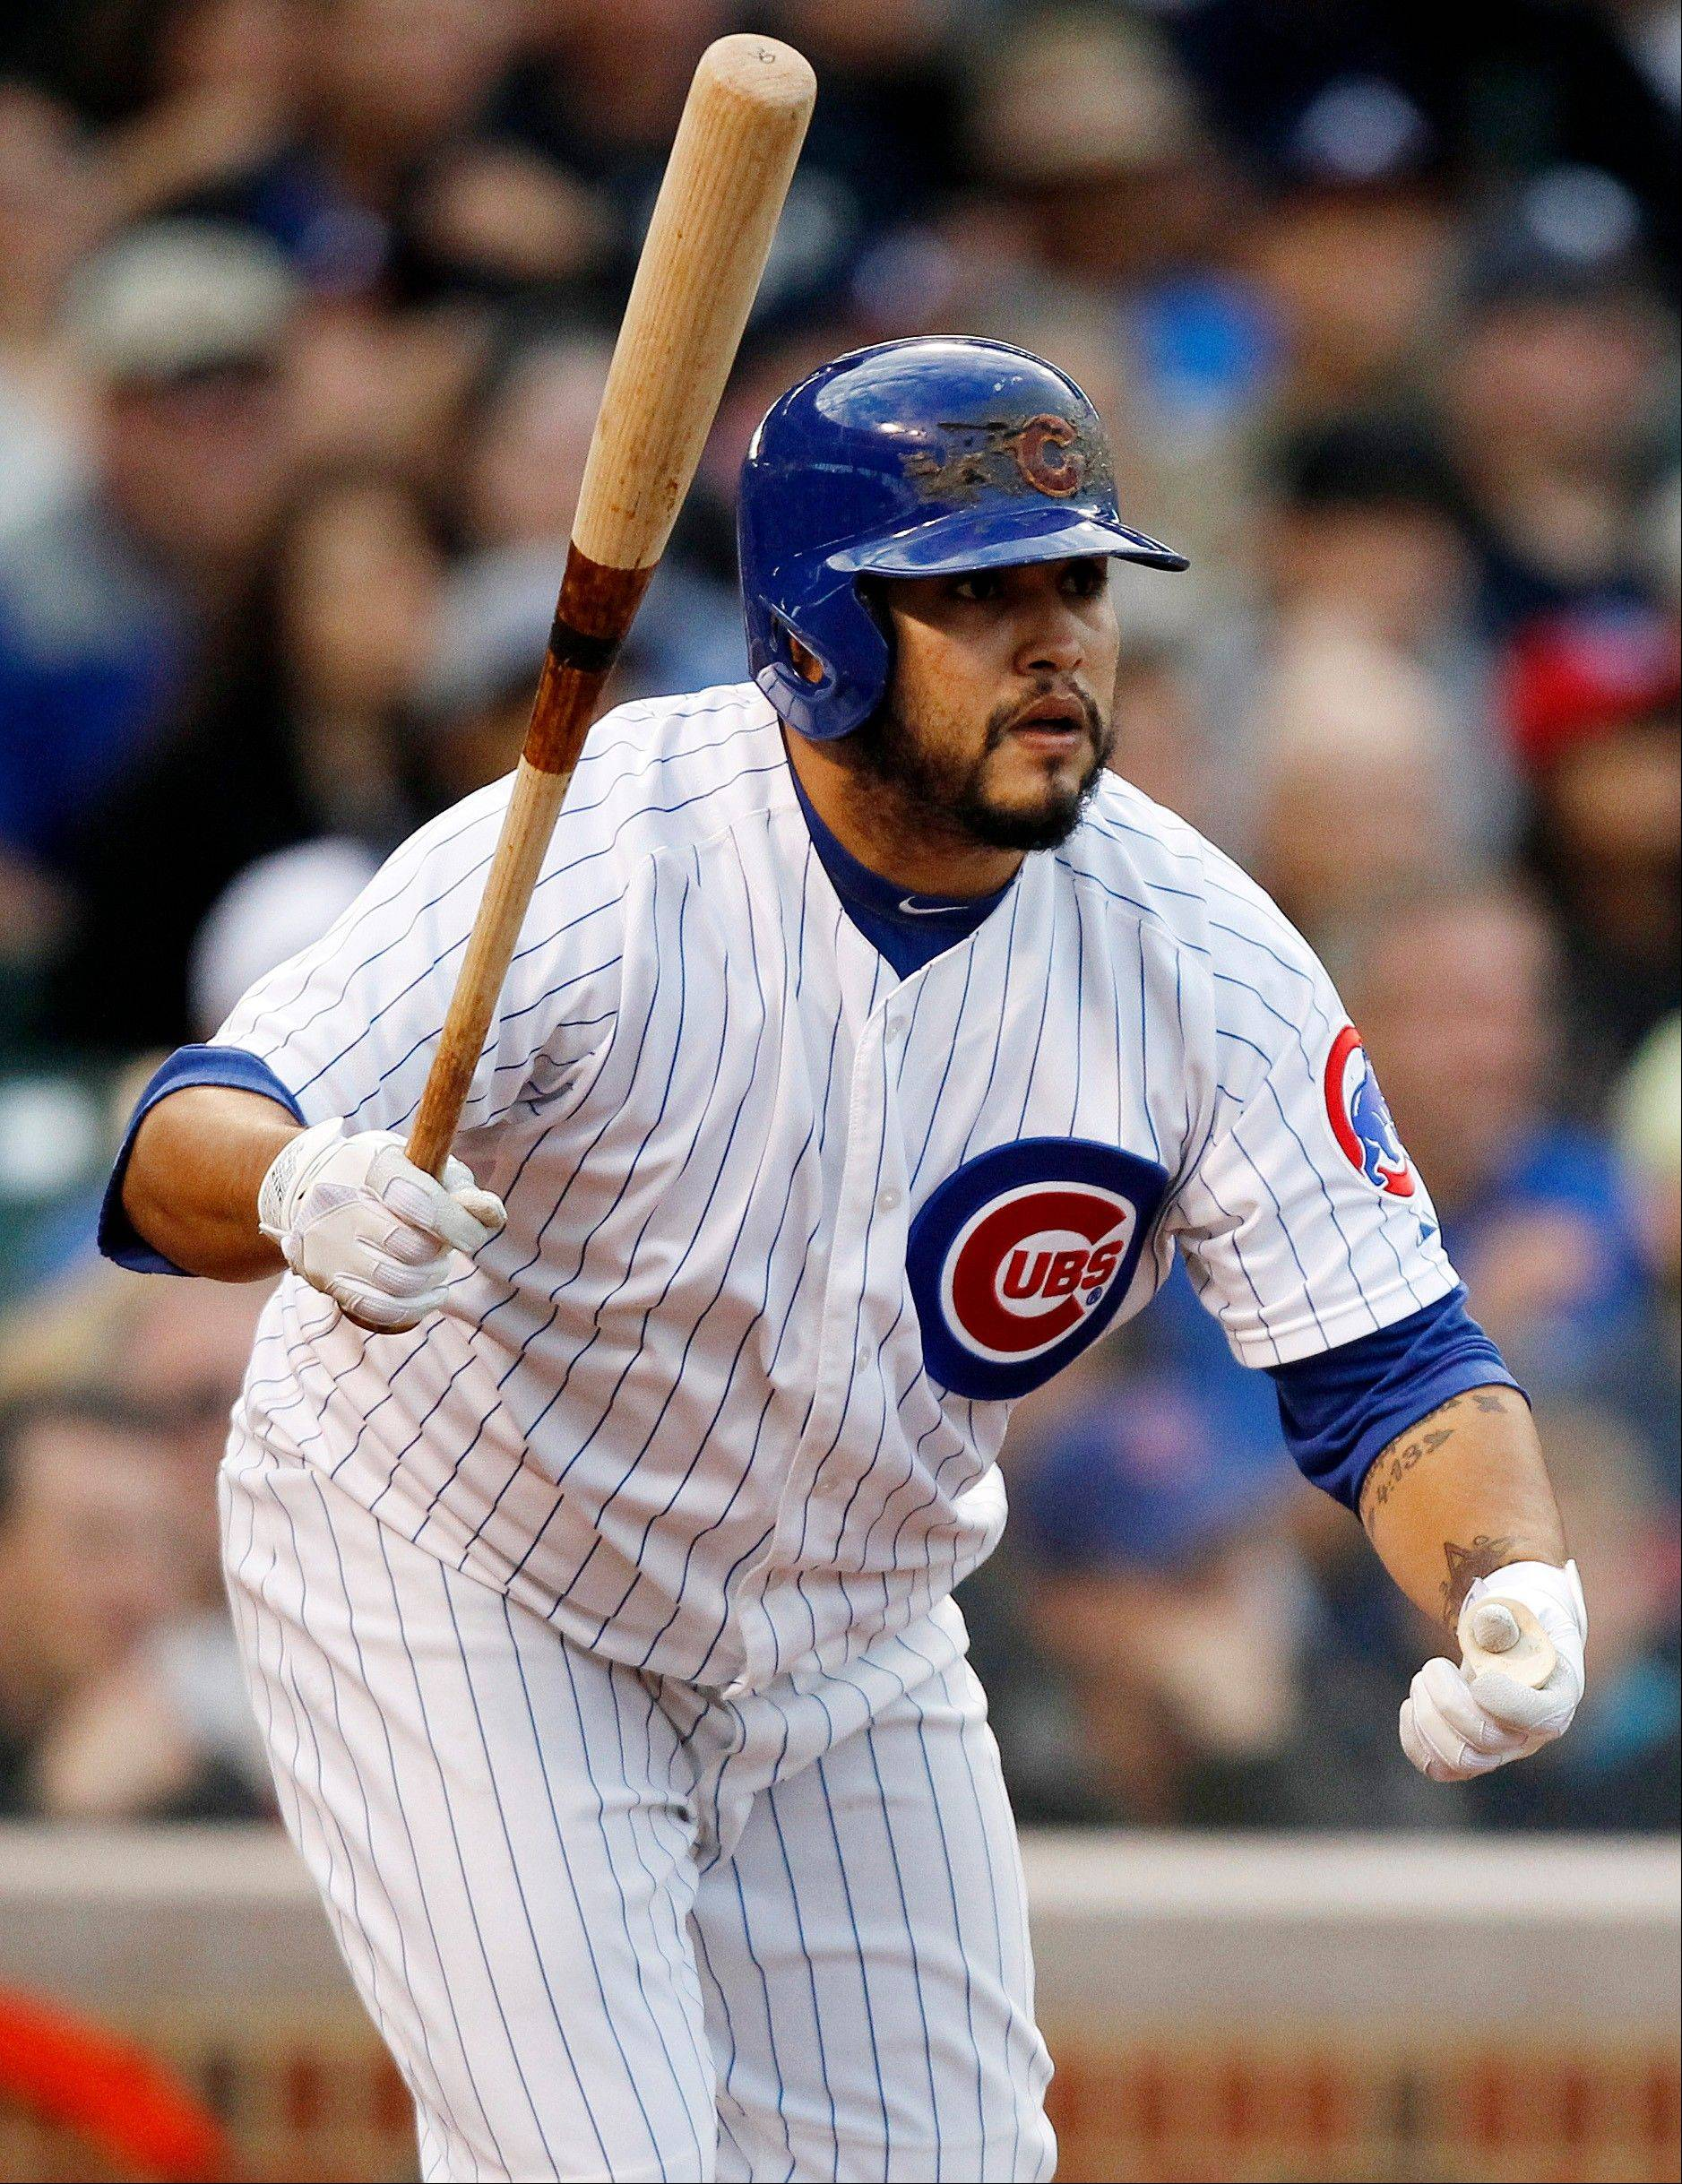 The Cubs� Dioner Navarro singles to score Donnie Murphy during the eighth inning of Saturday�s home game against the Braves.